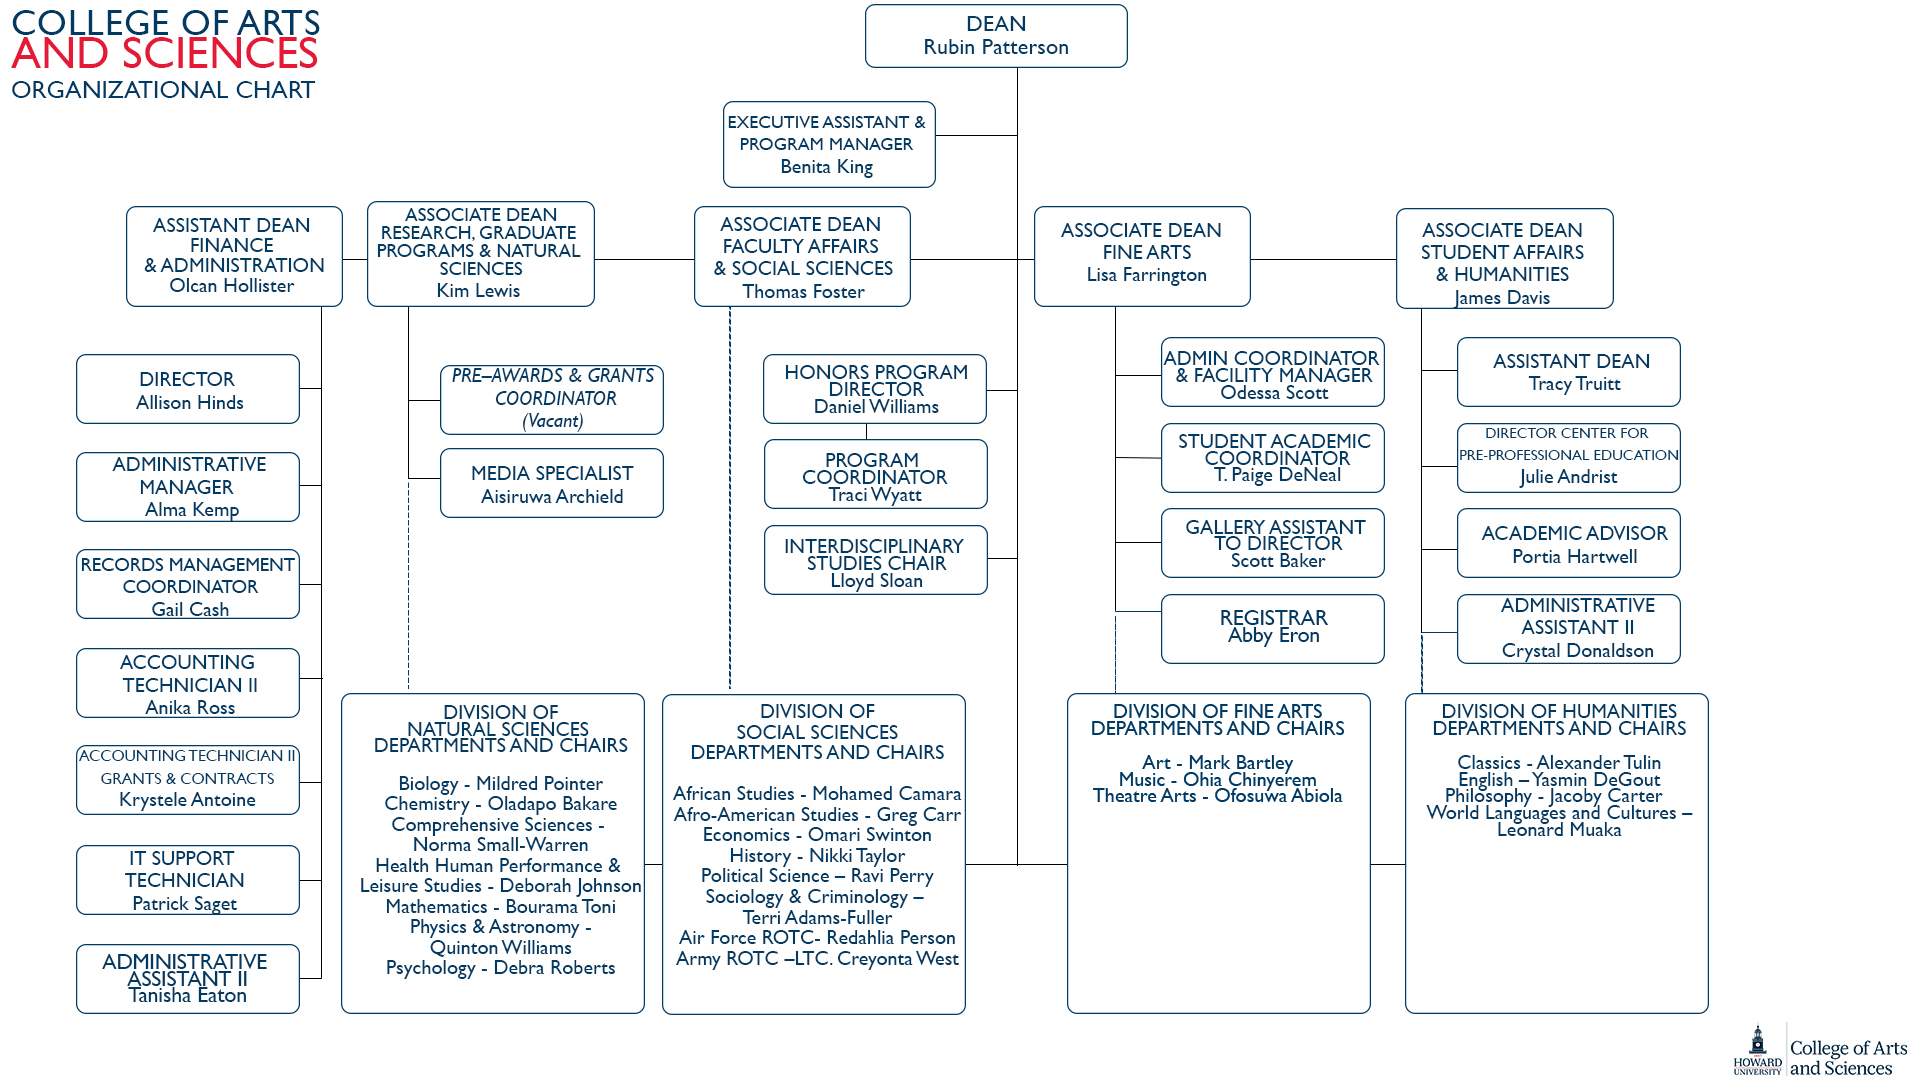 COAS Office of the Dean Organizational Chart 2020